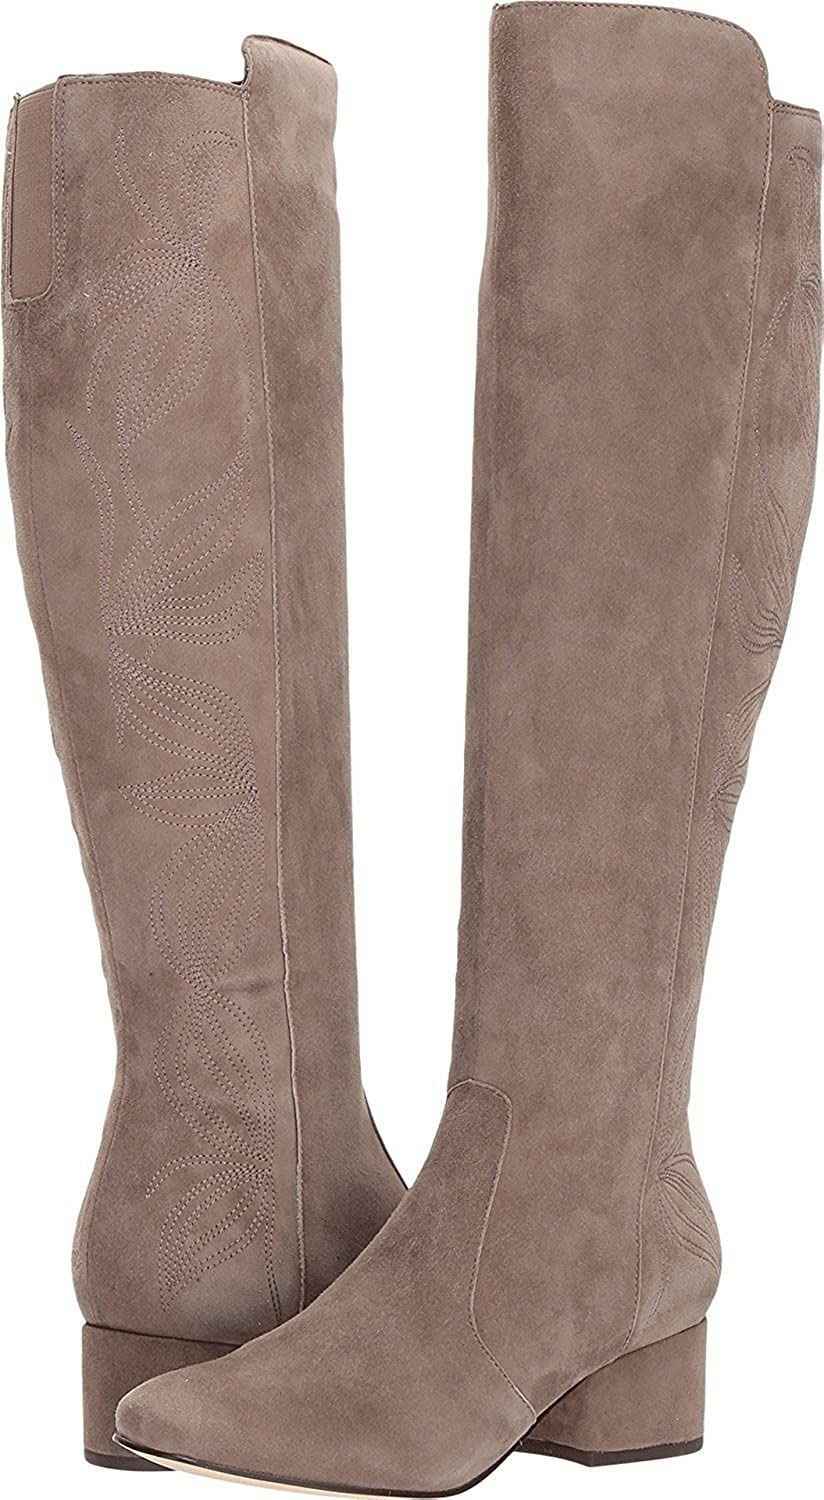 Womens Tawanna Almond Toe Knee High Fashion Taupe Suede Size 7.0